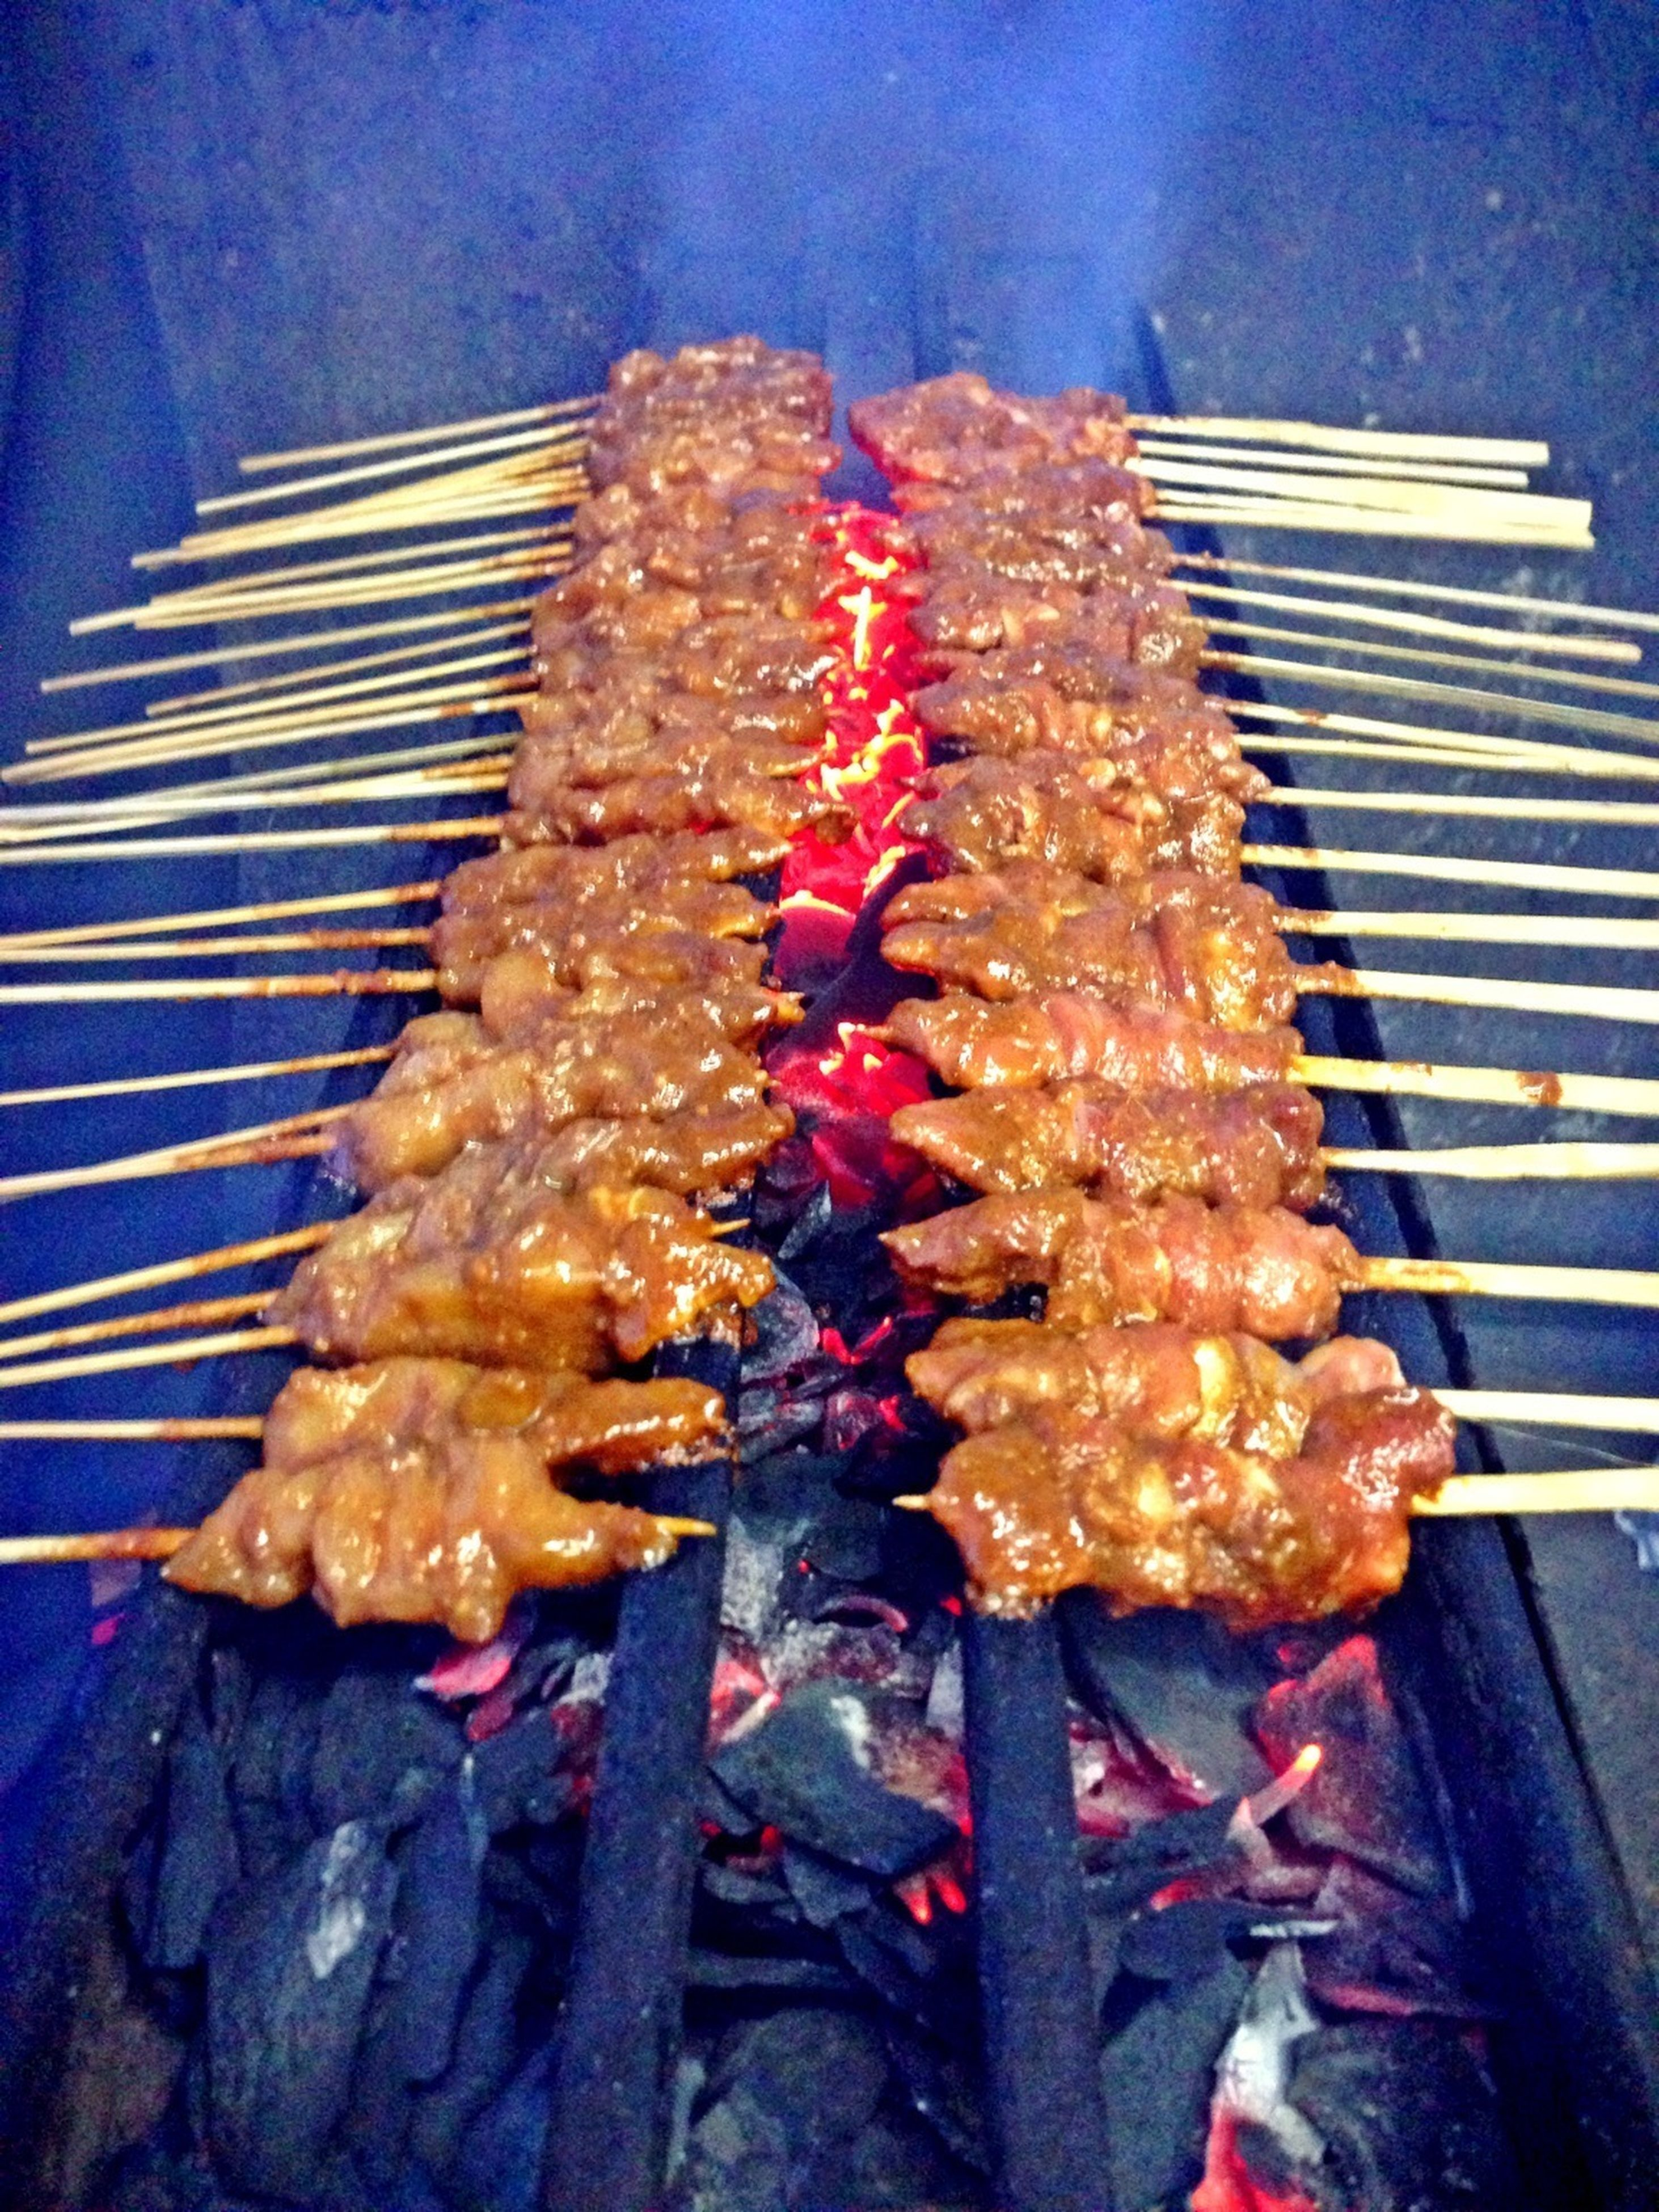 food, food and drink, freshness, grilled, barbecue grill, meat, barbecue, healthy eating, indoors, still life, preparation, roasted, heat - temperature, ready-to-eat, close-up, seafood, sausage, grill, skewer